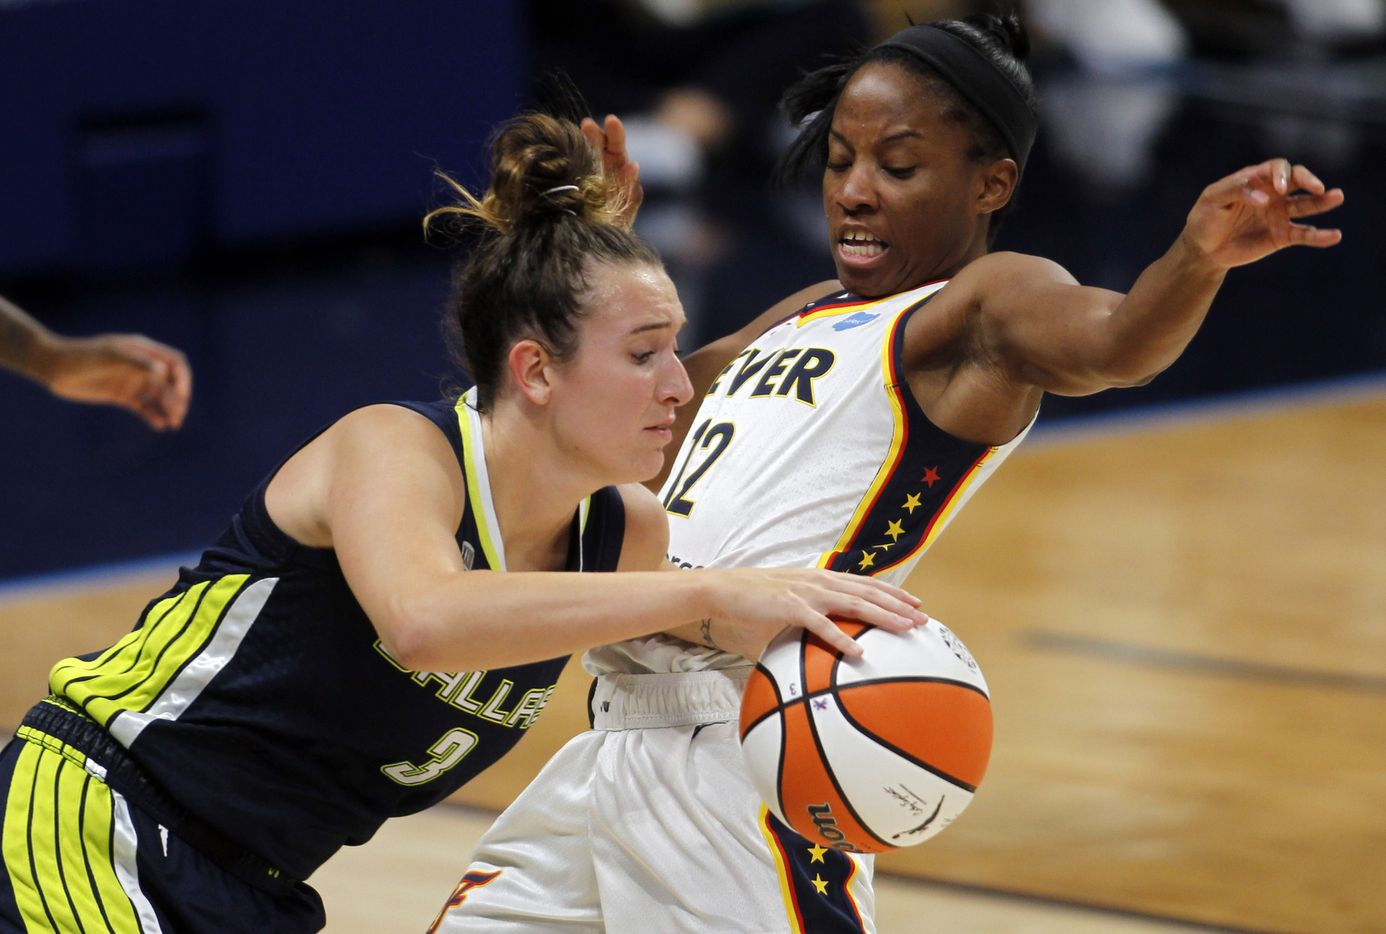 Dallas Wings guard Marina Mabry (3), left, drives against the defense of Indiana Fever guard Lindsay Allen (12) during first half action. The Dallas Wings hosted the Indiana Fever for their WNBA game held at College Park Center on the campus of UT-Arlington on August 20, 2021. (Steve Hamm/ Special Contributor)